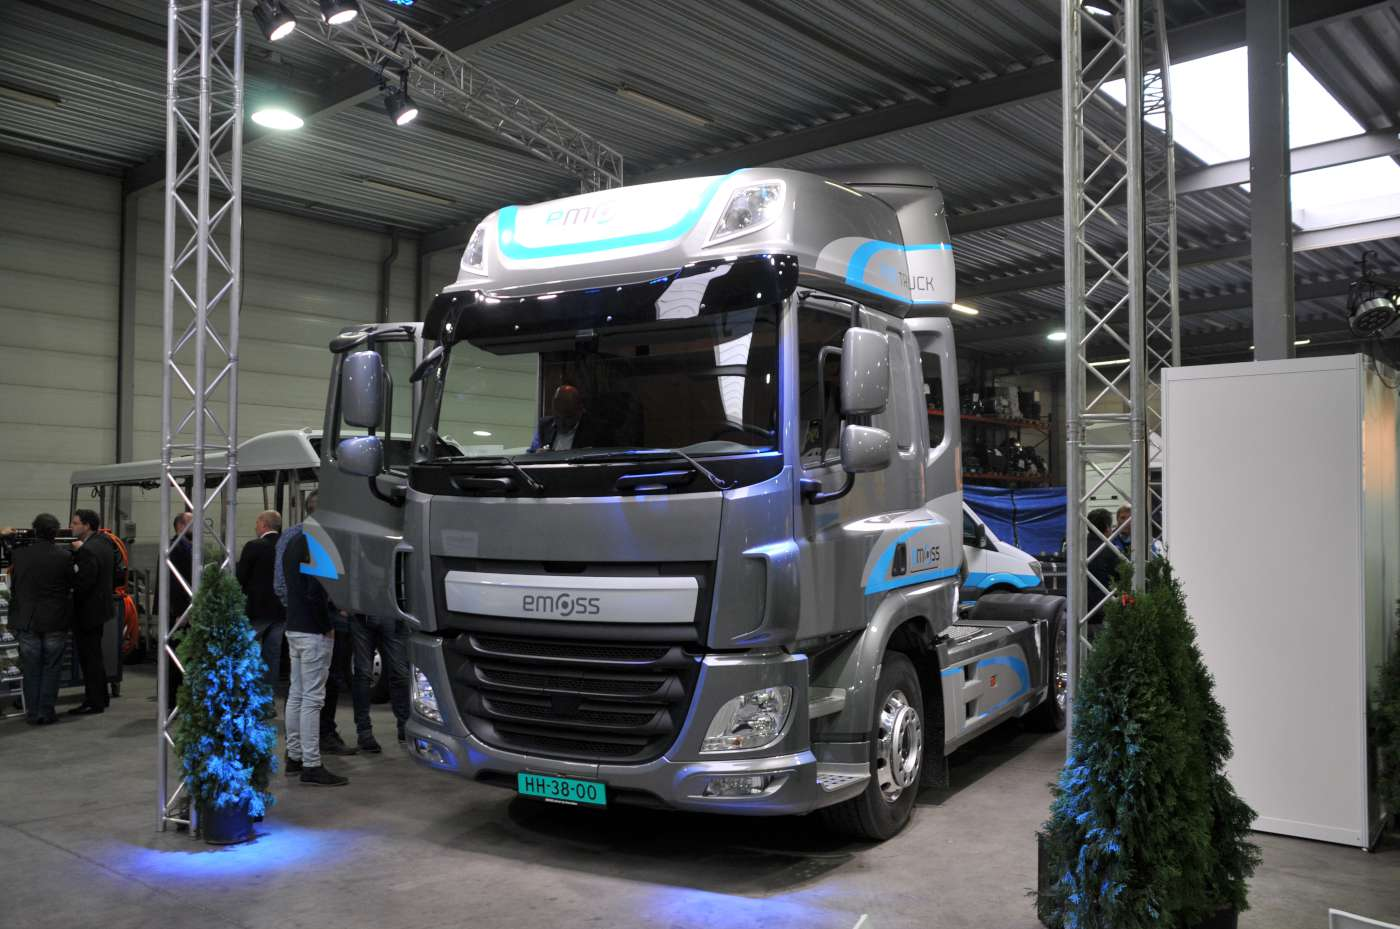 Emoss Ever electric truck presented – Iepieleaks